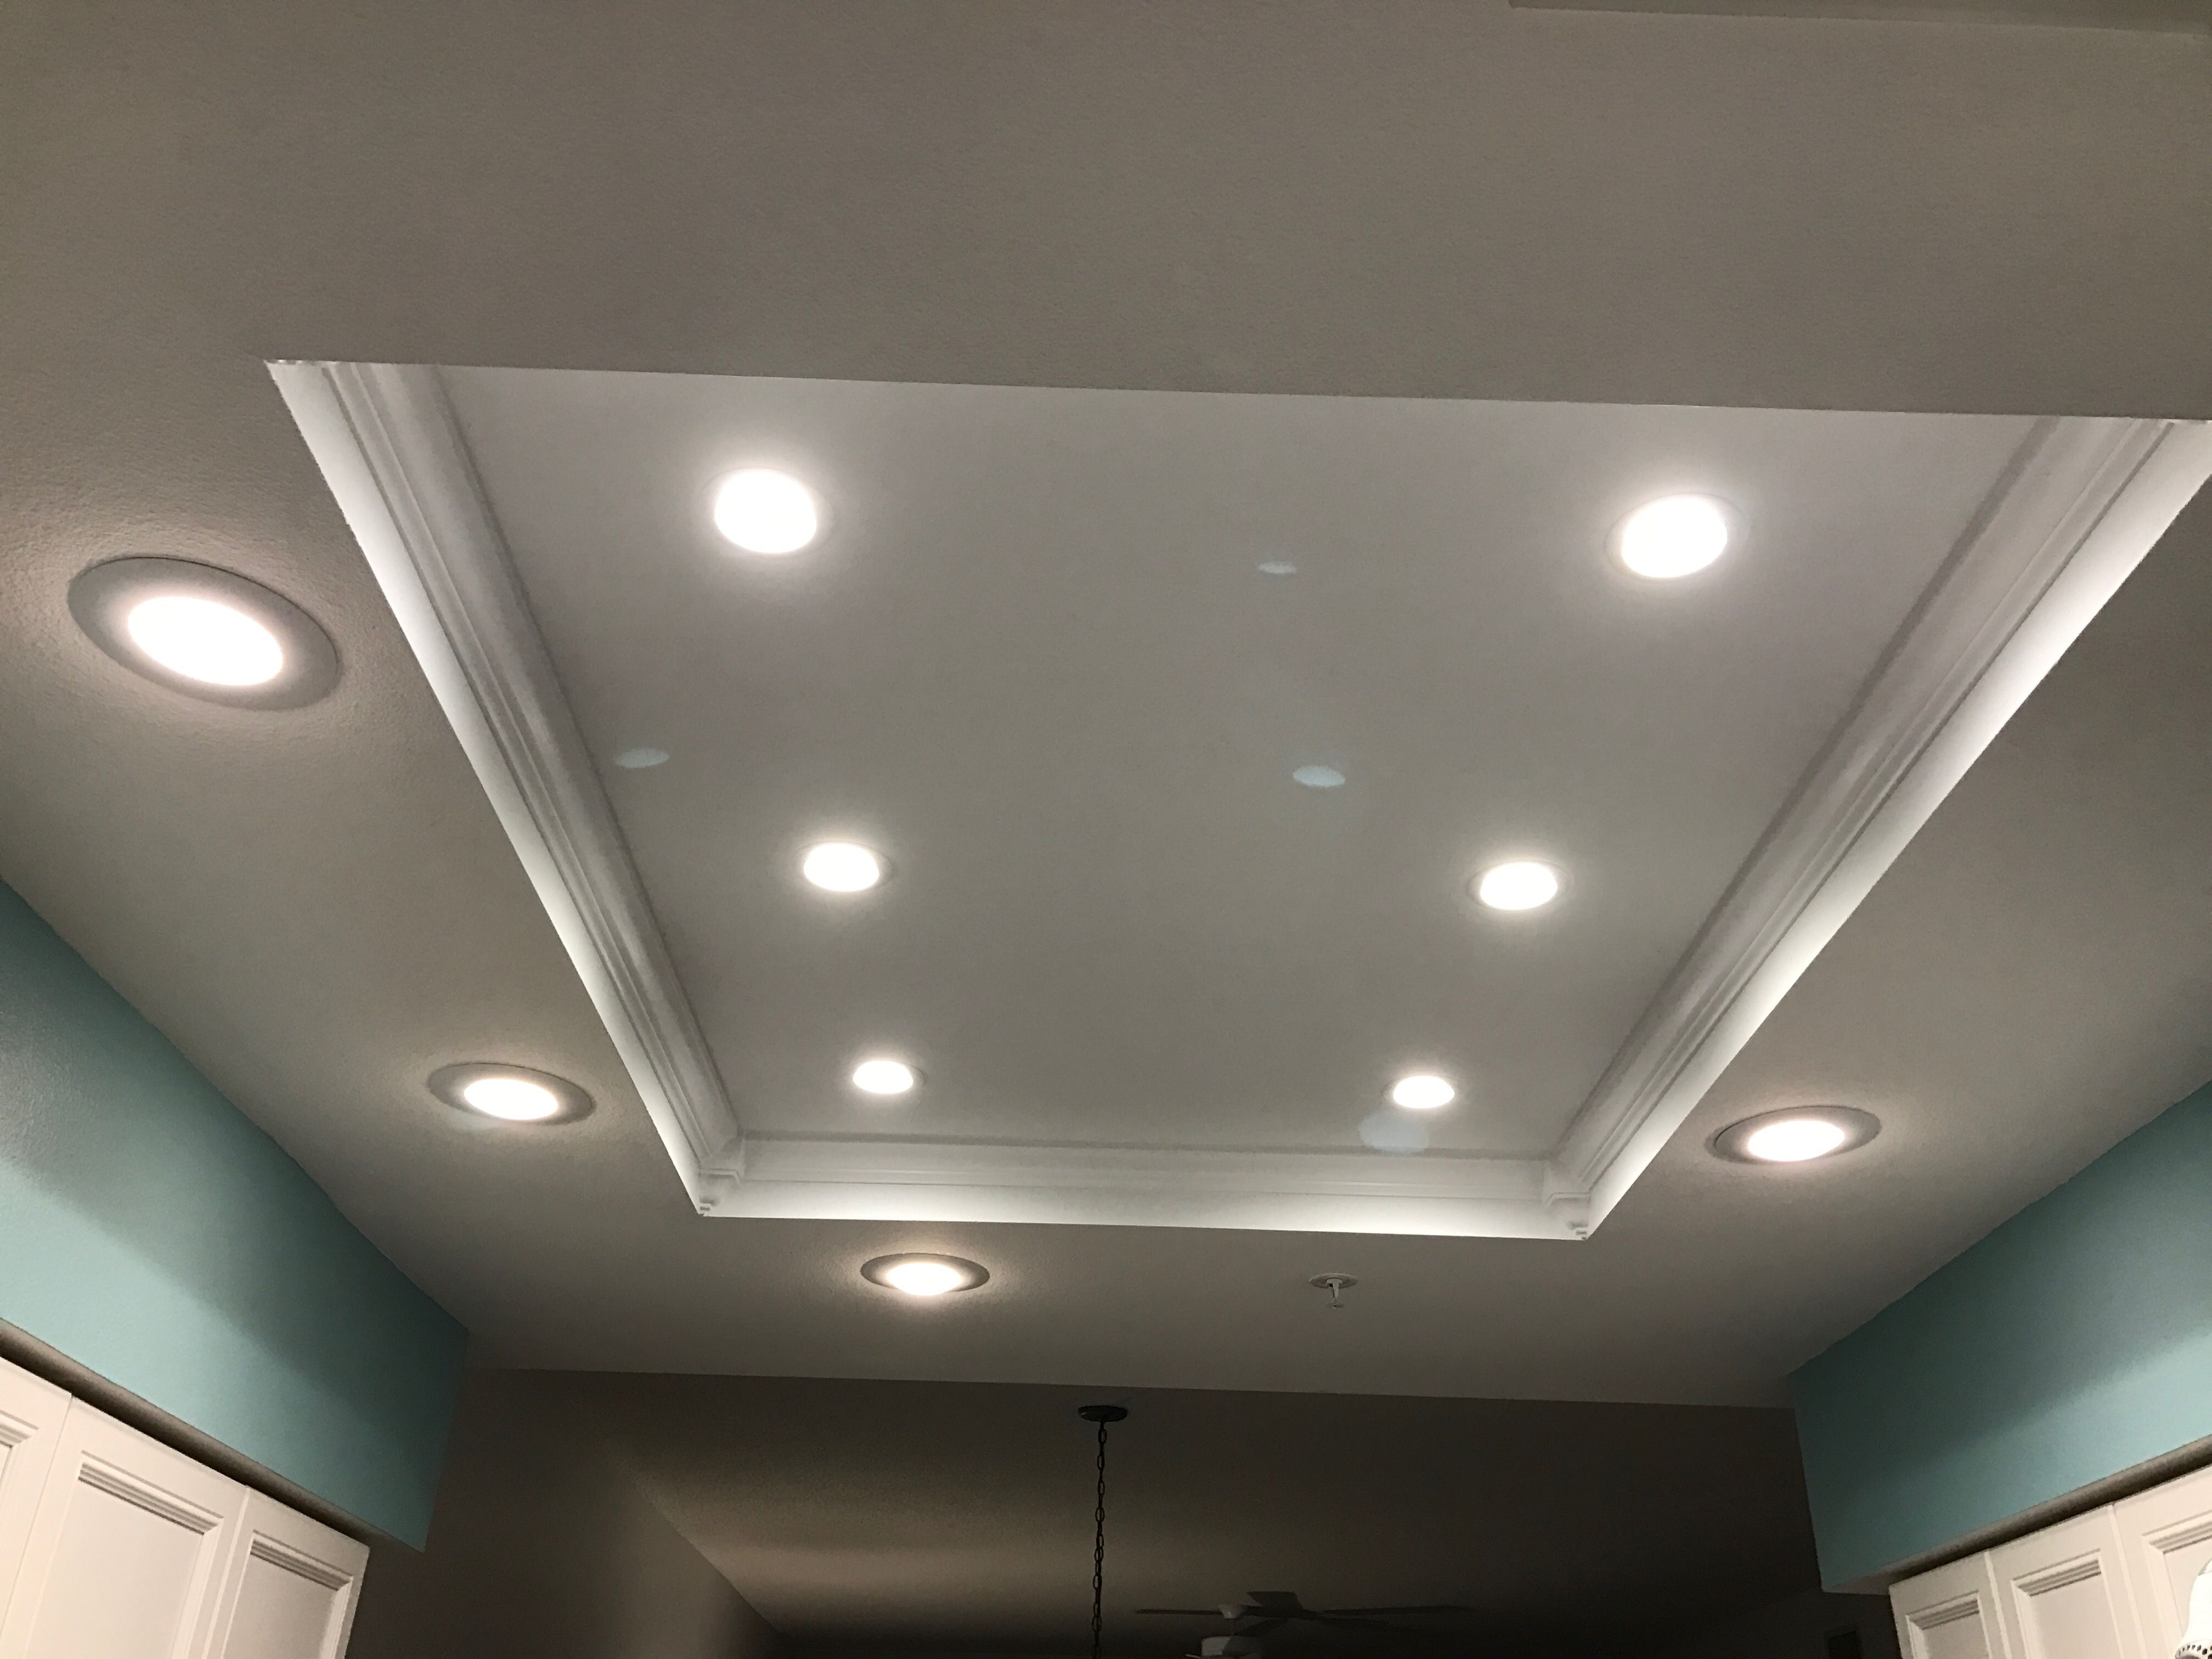 buy popular 8860e a3dff Remodeled fluorescent dome light in condo kitchen. Six 3.5 ...